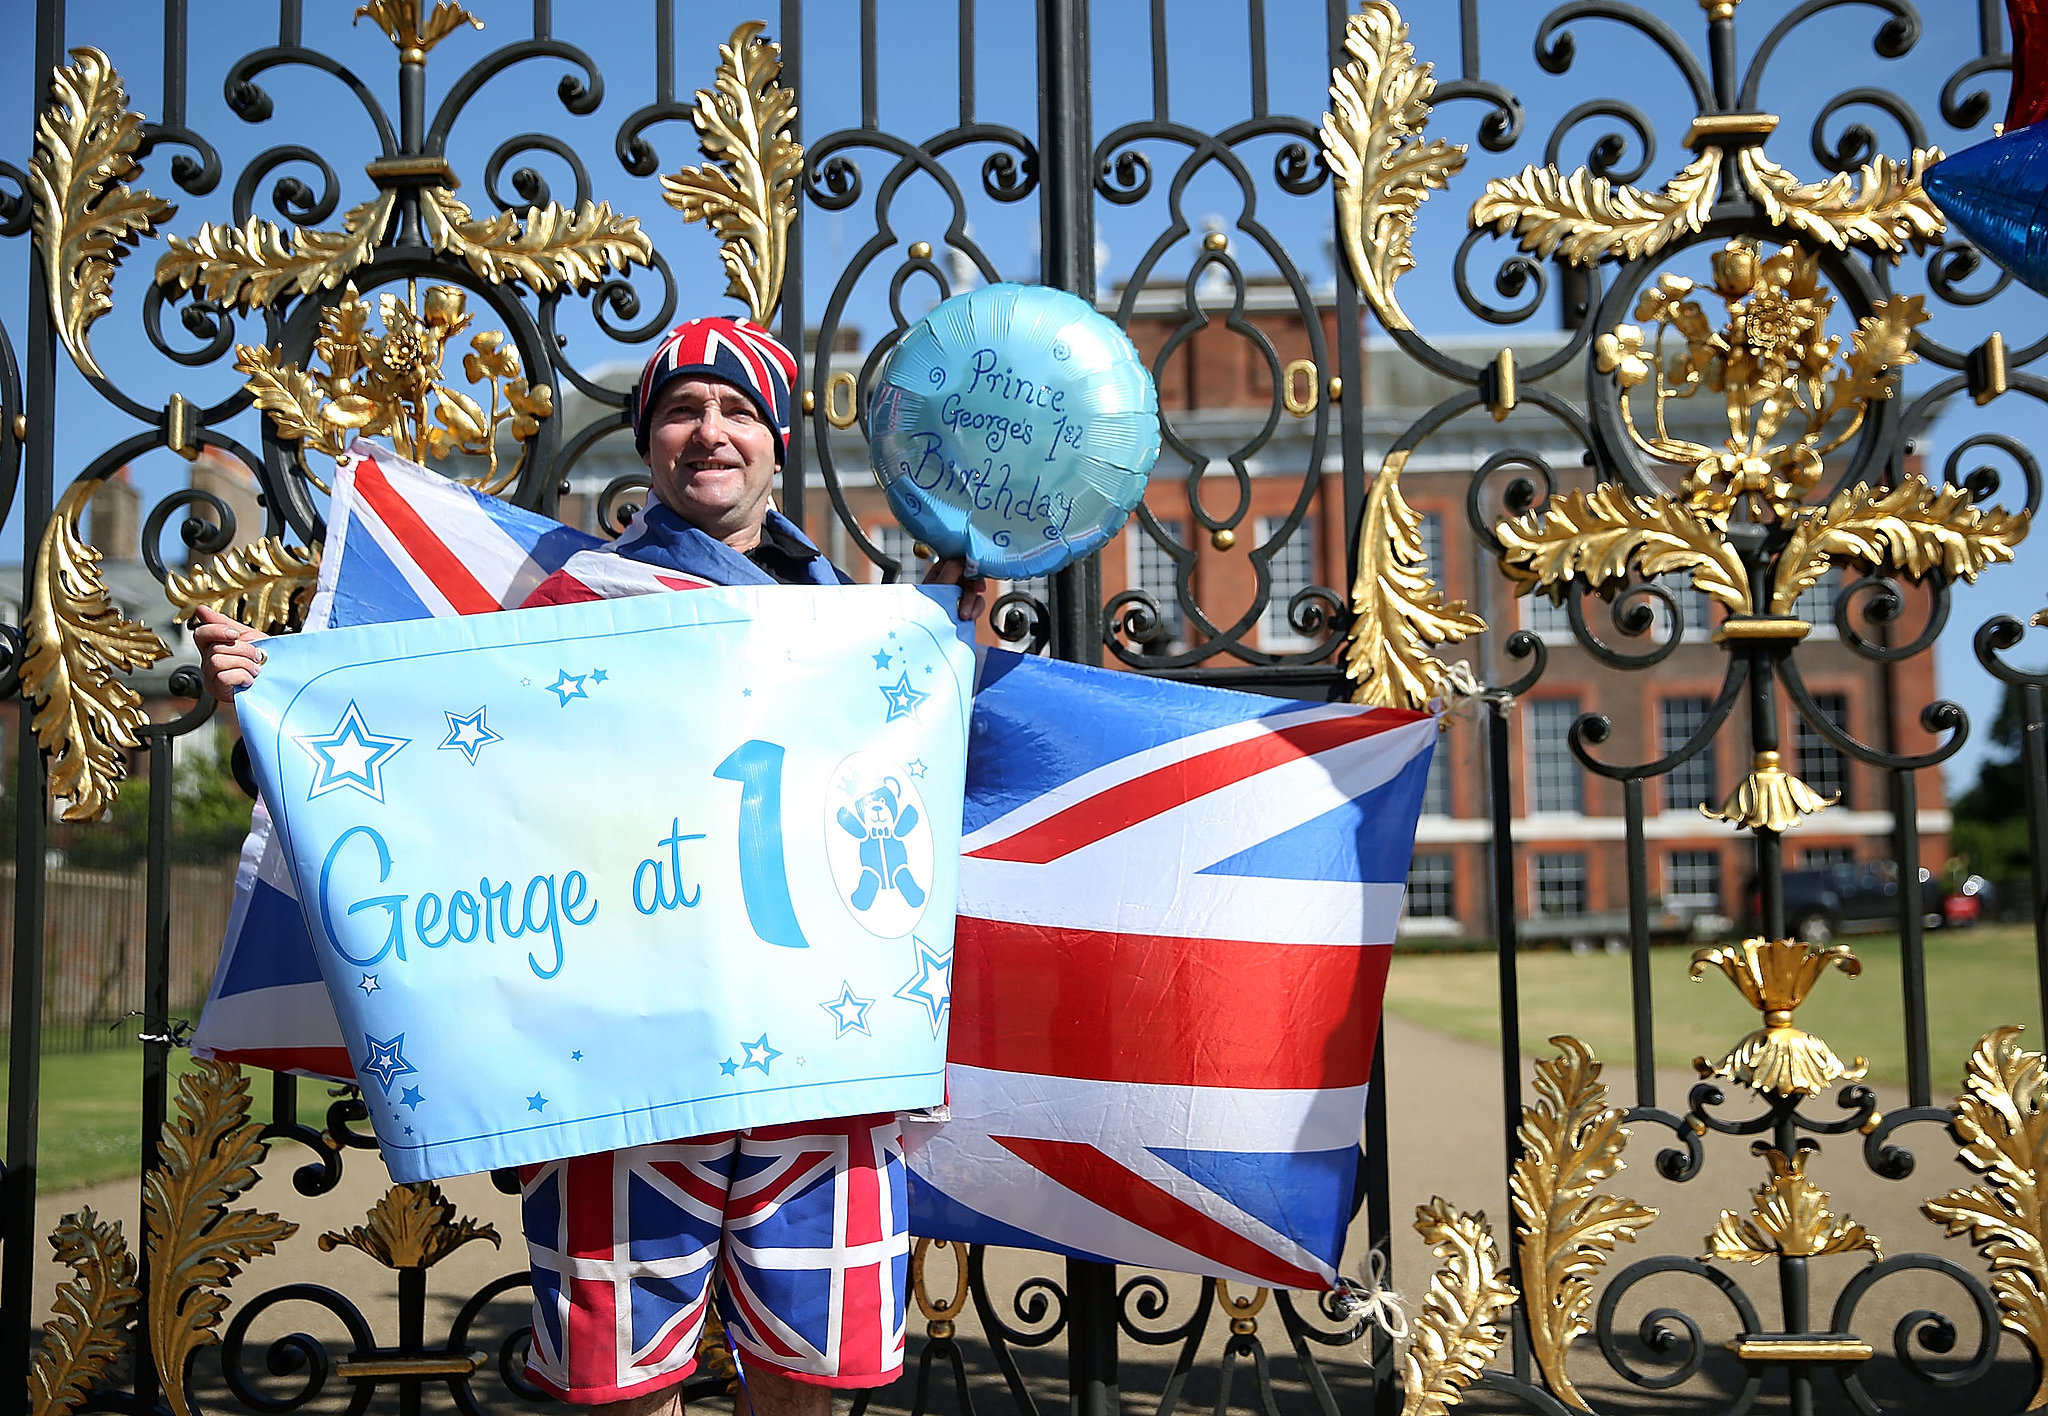 Fans wished George a happy birthday outside of Kensington Palace.